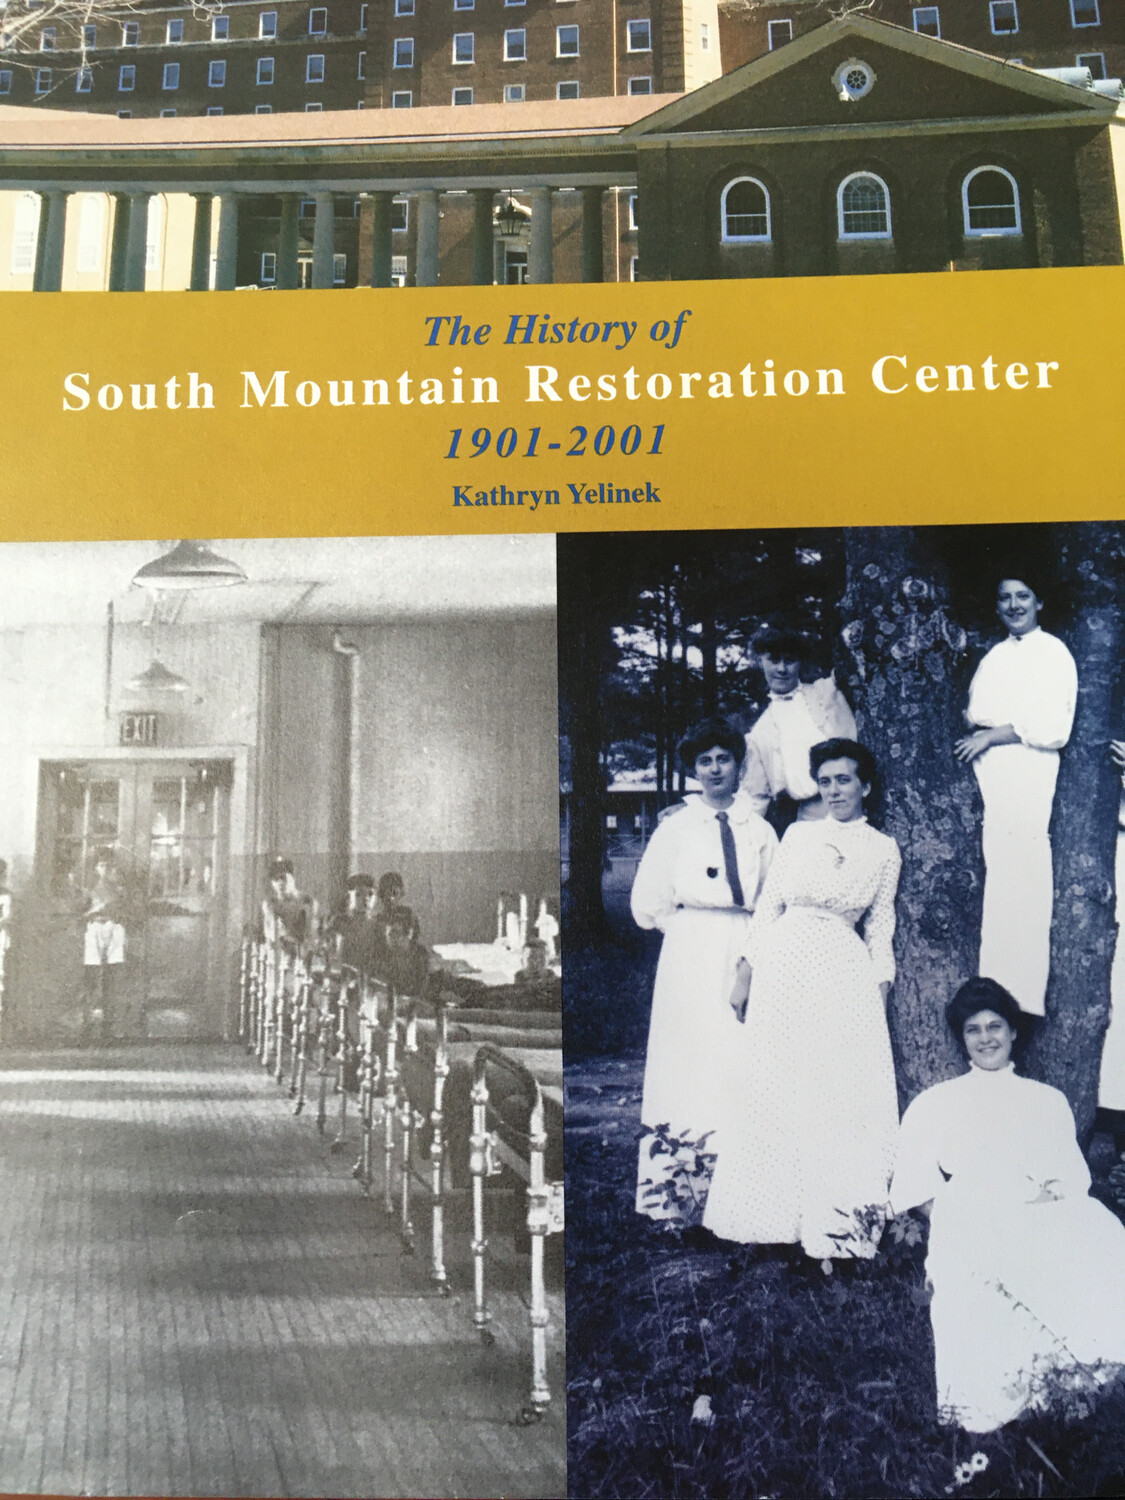 History of South Mountain Restoration Center